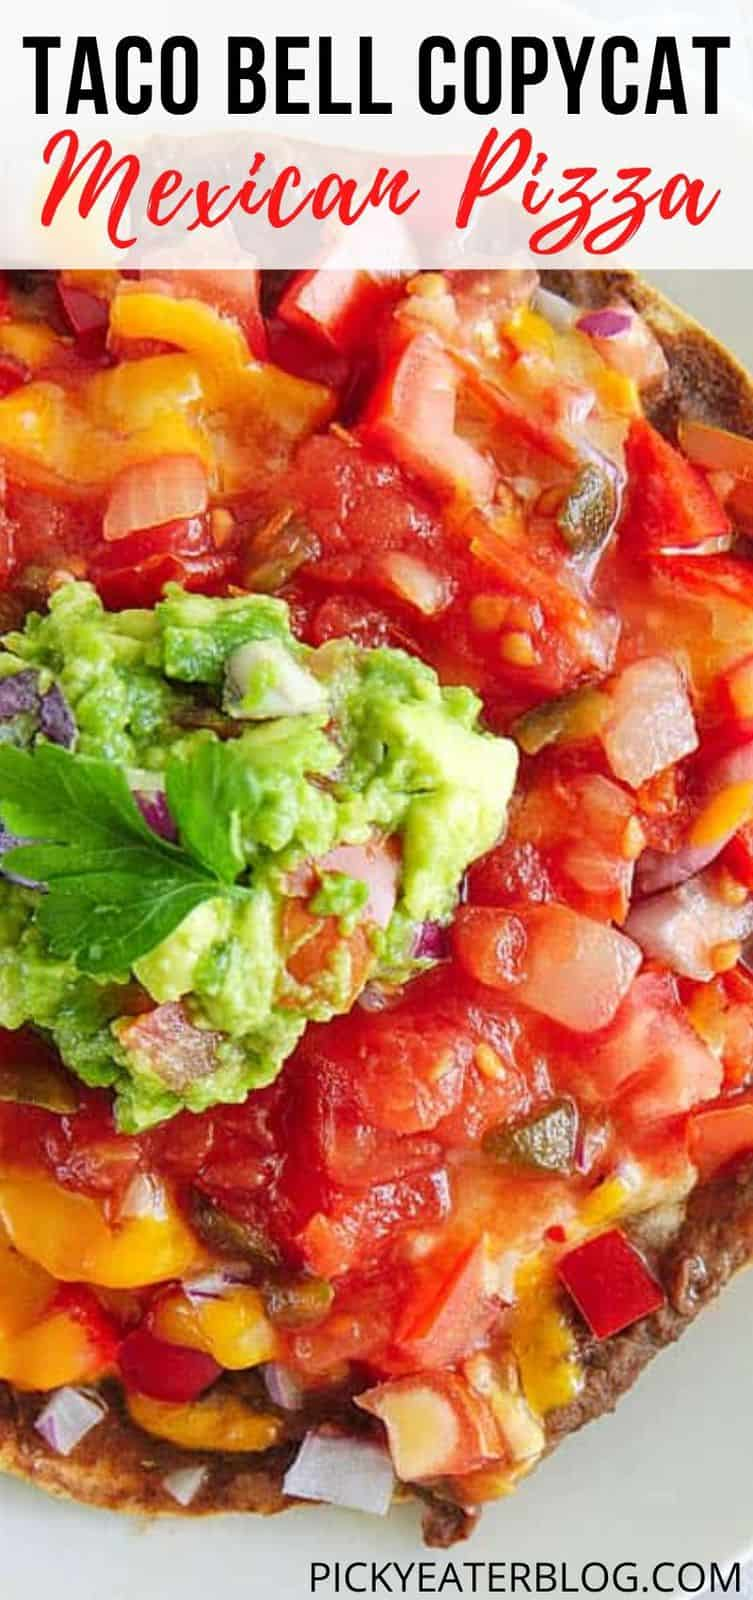 Healthy Copycat Taco Bell Mexican Pizza topped with salsa and guacamole, served on a white plate